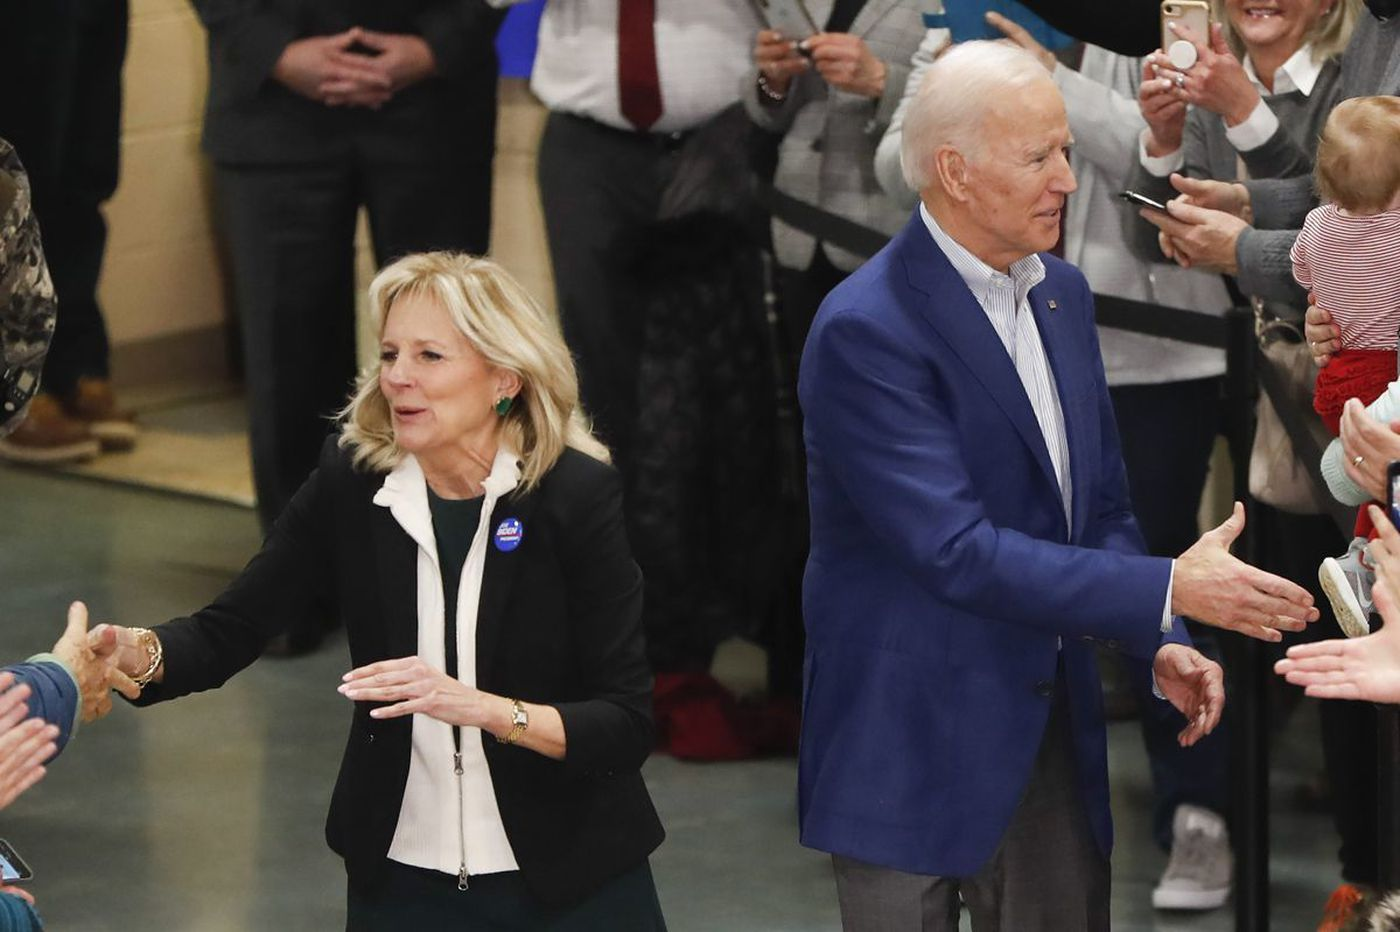 Jill Biden confronts heckler during her husband's New Hampshire rally: 'I'm a good Philly girl'